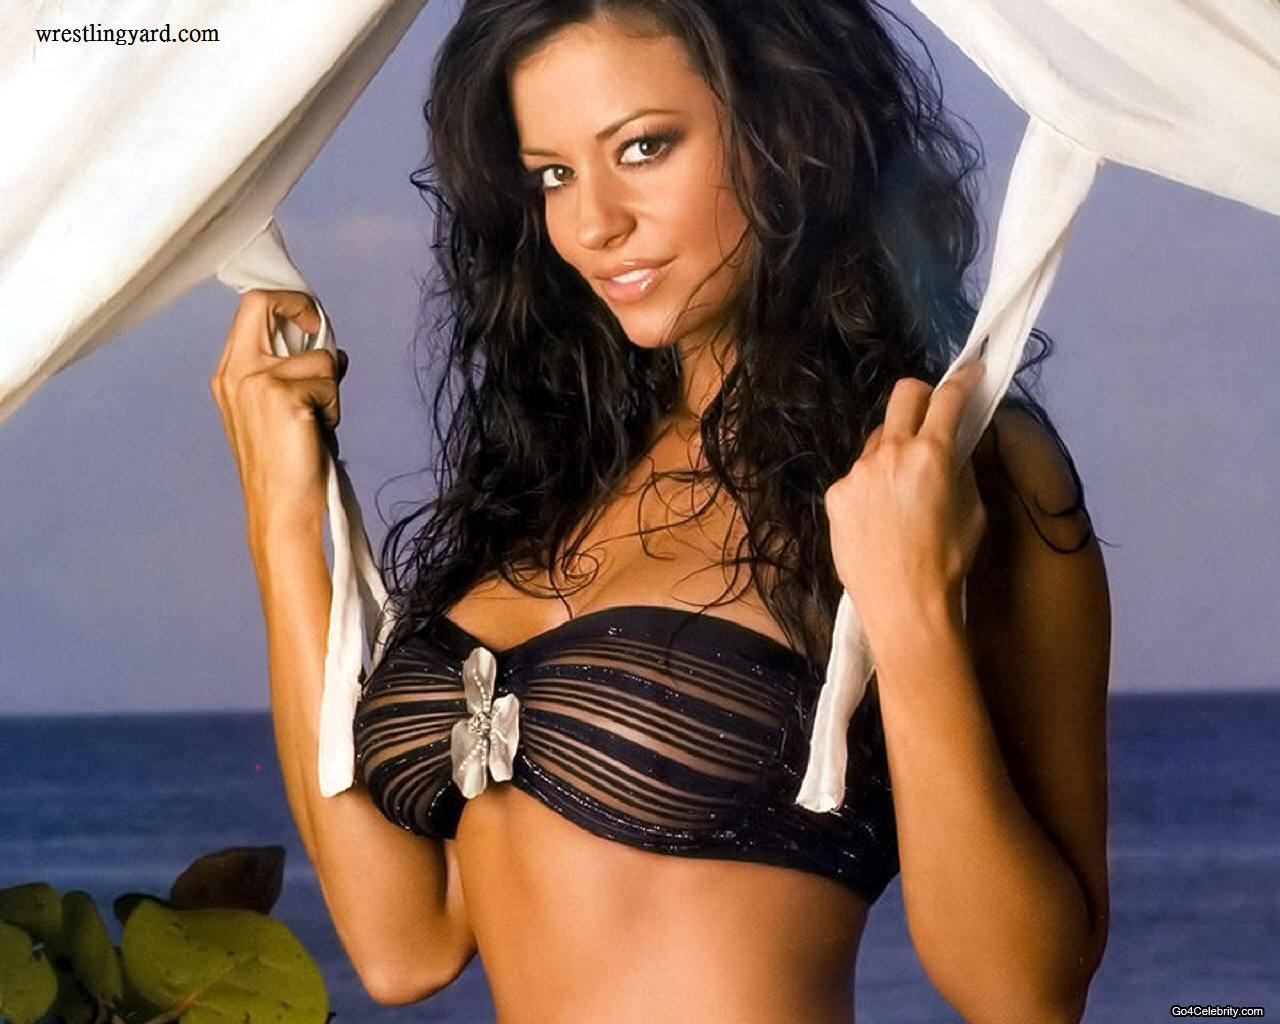 wrestlingyard candice michelle likenesses%2525252C%25252Bslogans%2525252C%25252Bwrestling%25252B gamer girl wallpaper wwe sexy boobs girls wwe beach sexy big ass pictures wallpapers latest 2011 wallpapers wwe super stars candice  What a great prize if you're pregnant, know someone who is pregnant or if ...